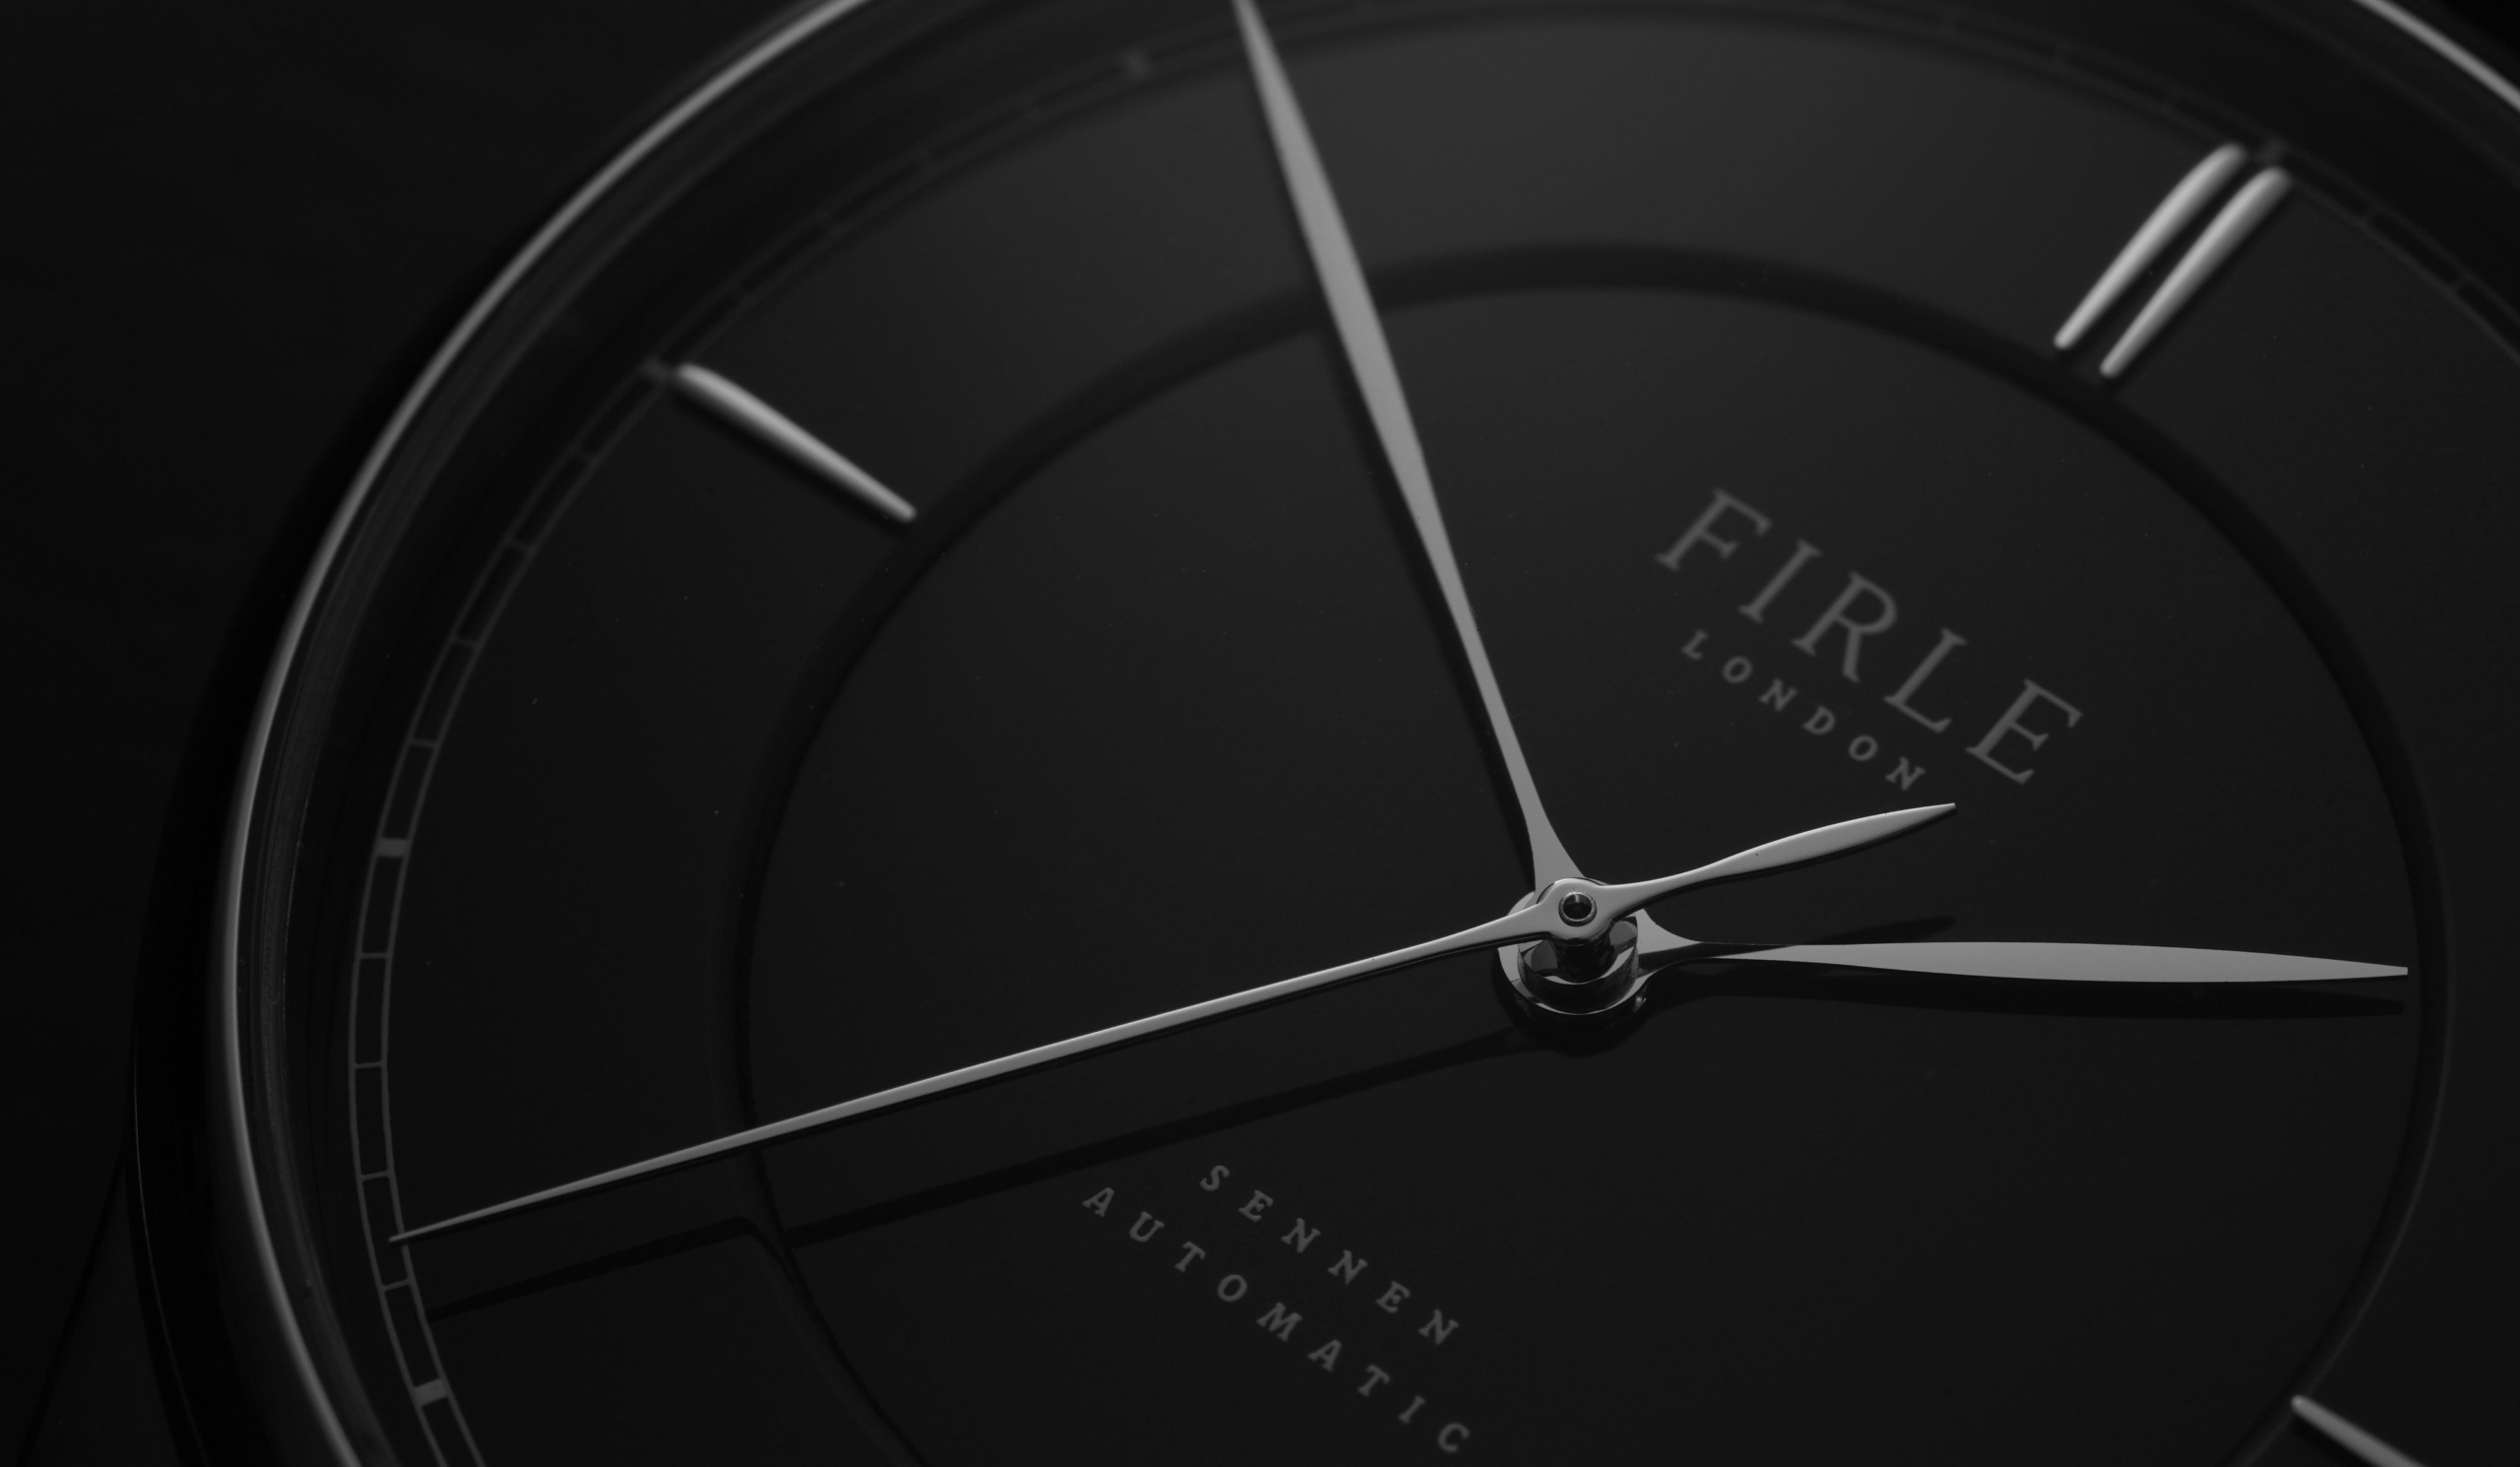 Firle Watches